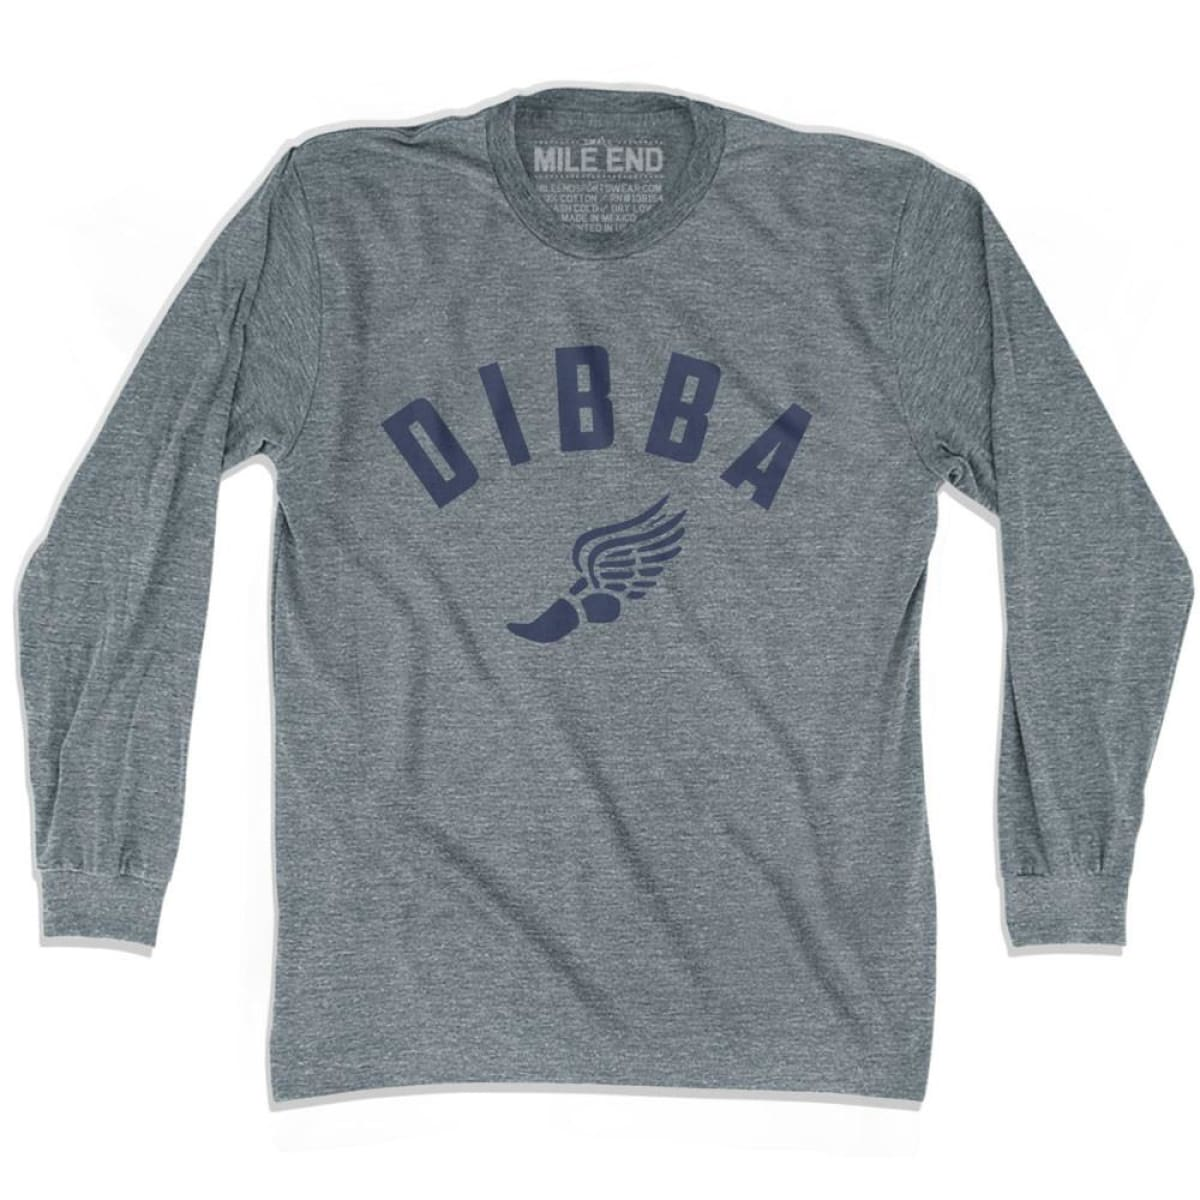 Dibba Track Long Sleeve T-shirt - Athletic Grey / Adult X-Small - Mile End Track